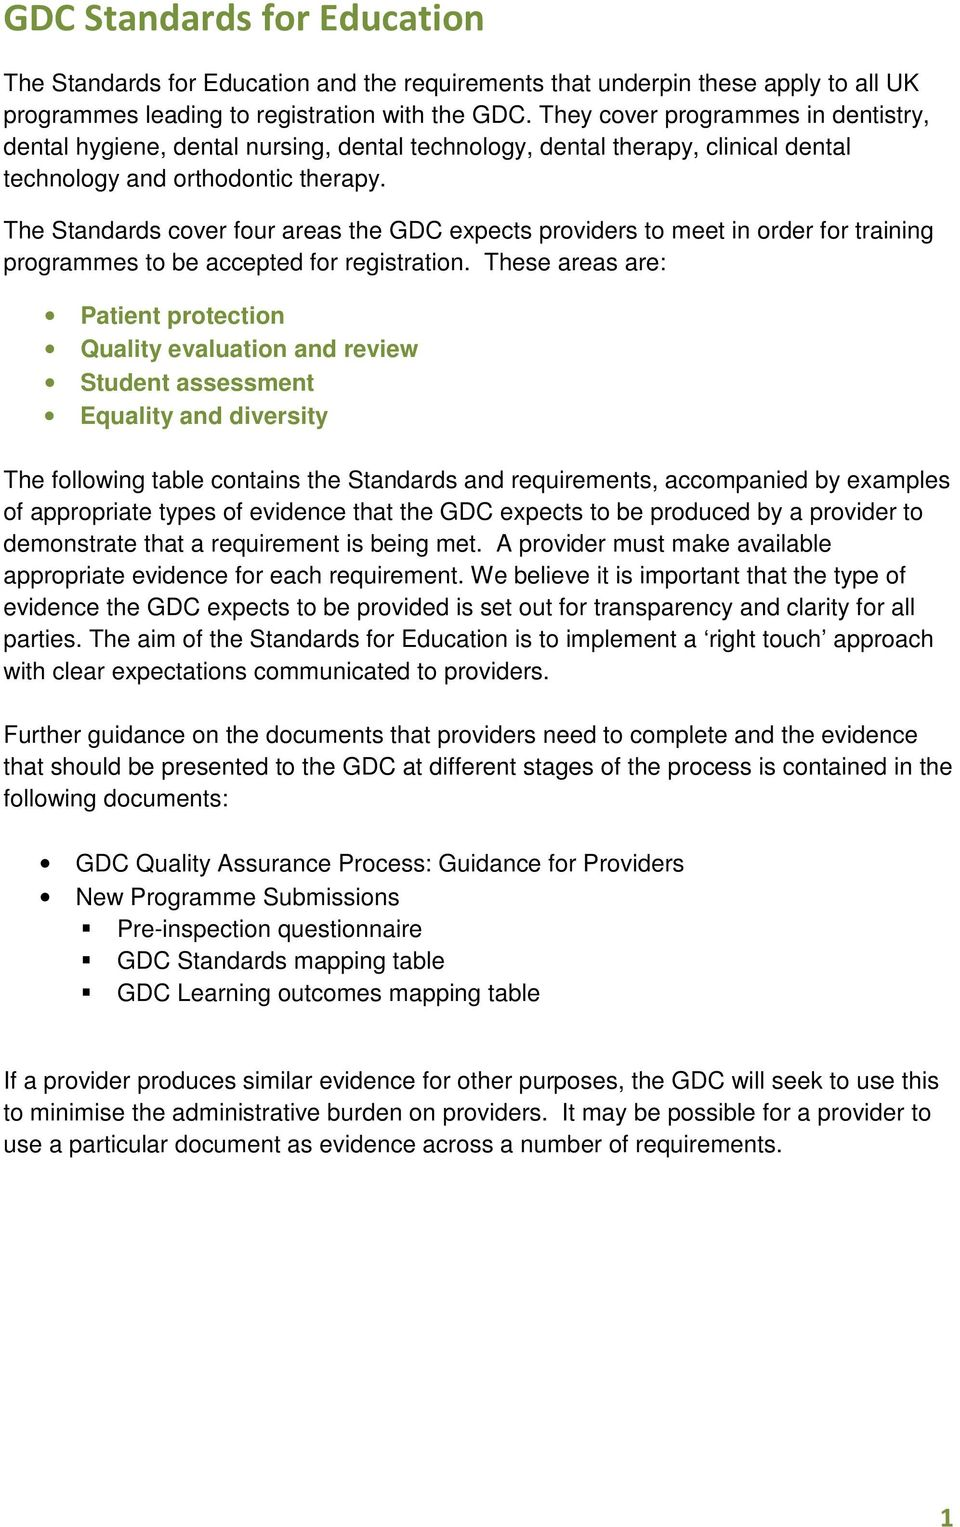 The Standards cover four areas the GDC expects providers to meet in order for training programmes to be accepted for registration.